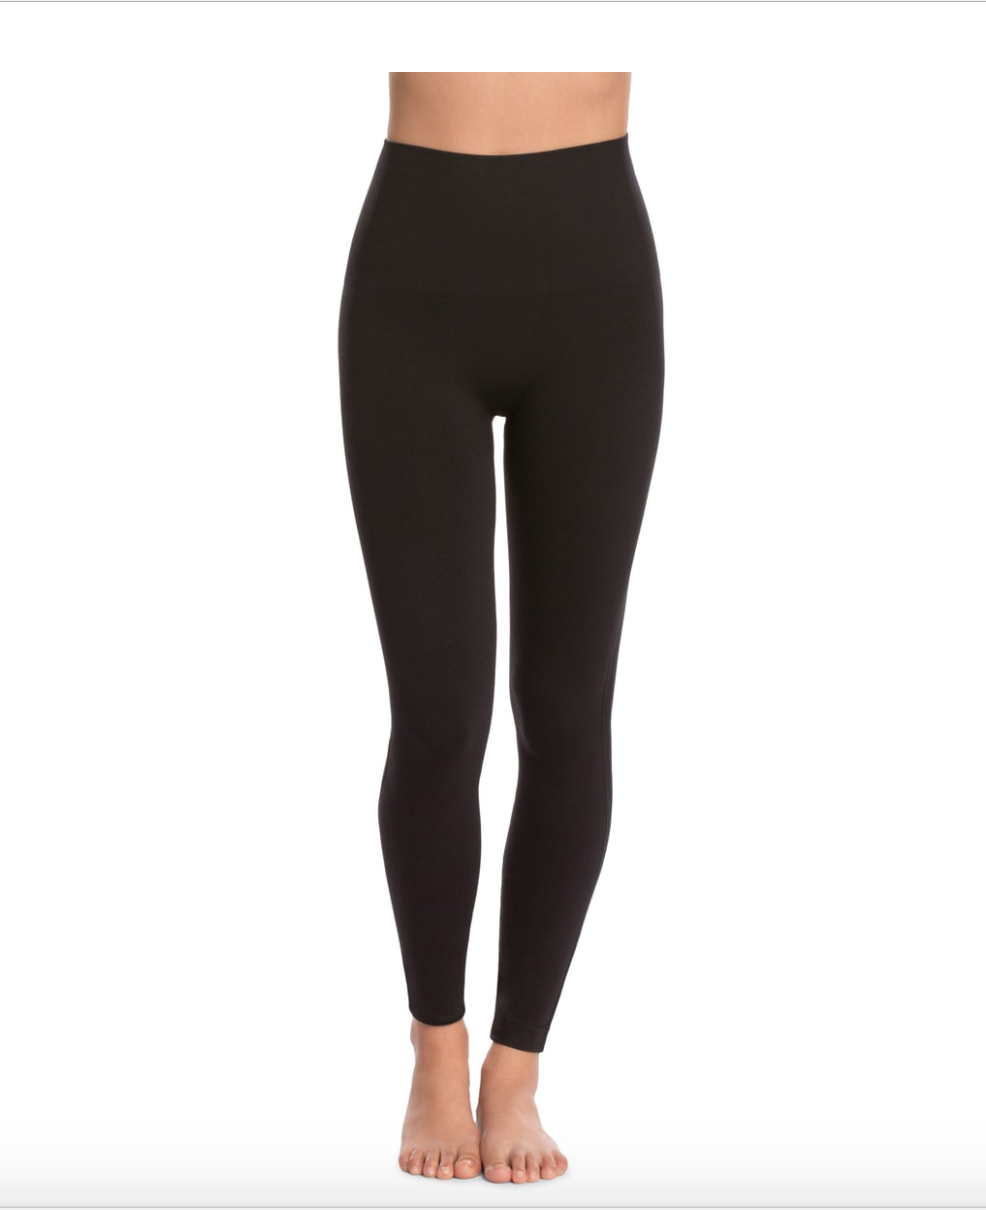 Spanx Seamless Leggings - I found these at Nordstrom a few years ago and wear them out because of how comfortable they are. I wear them all fall and winter long but love when they go on sale even more because they're worth a pretty penny.BUY HERE